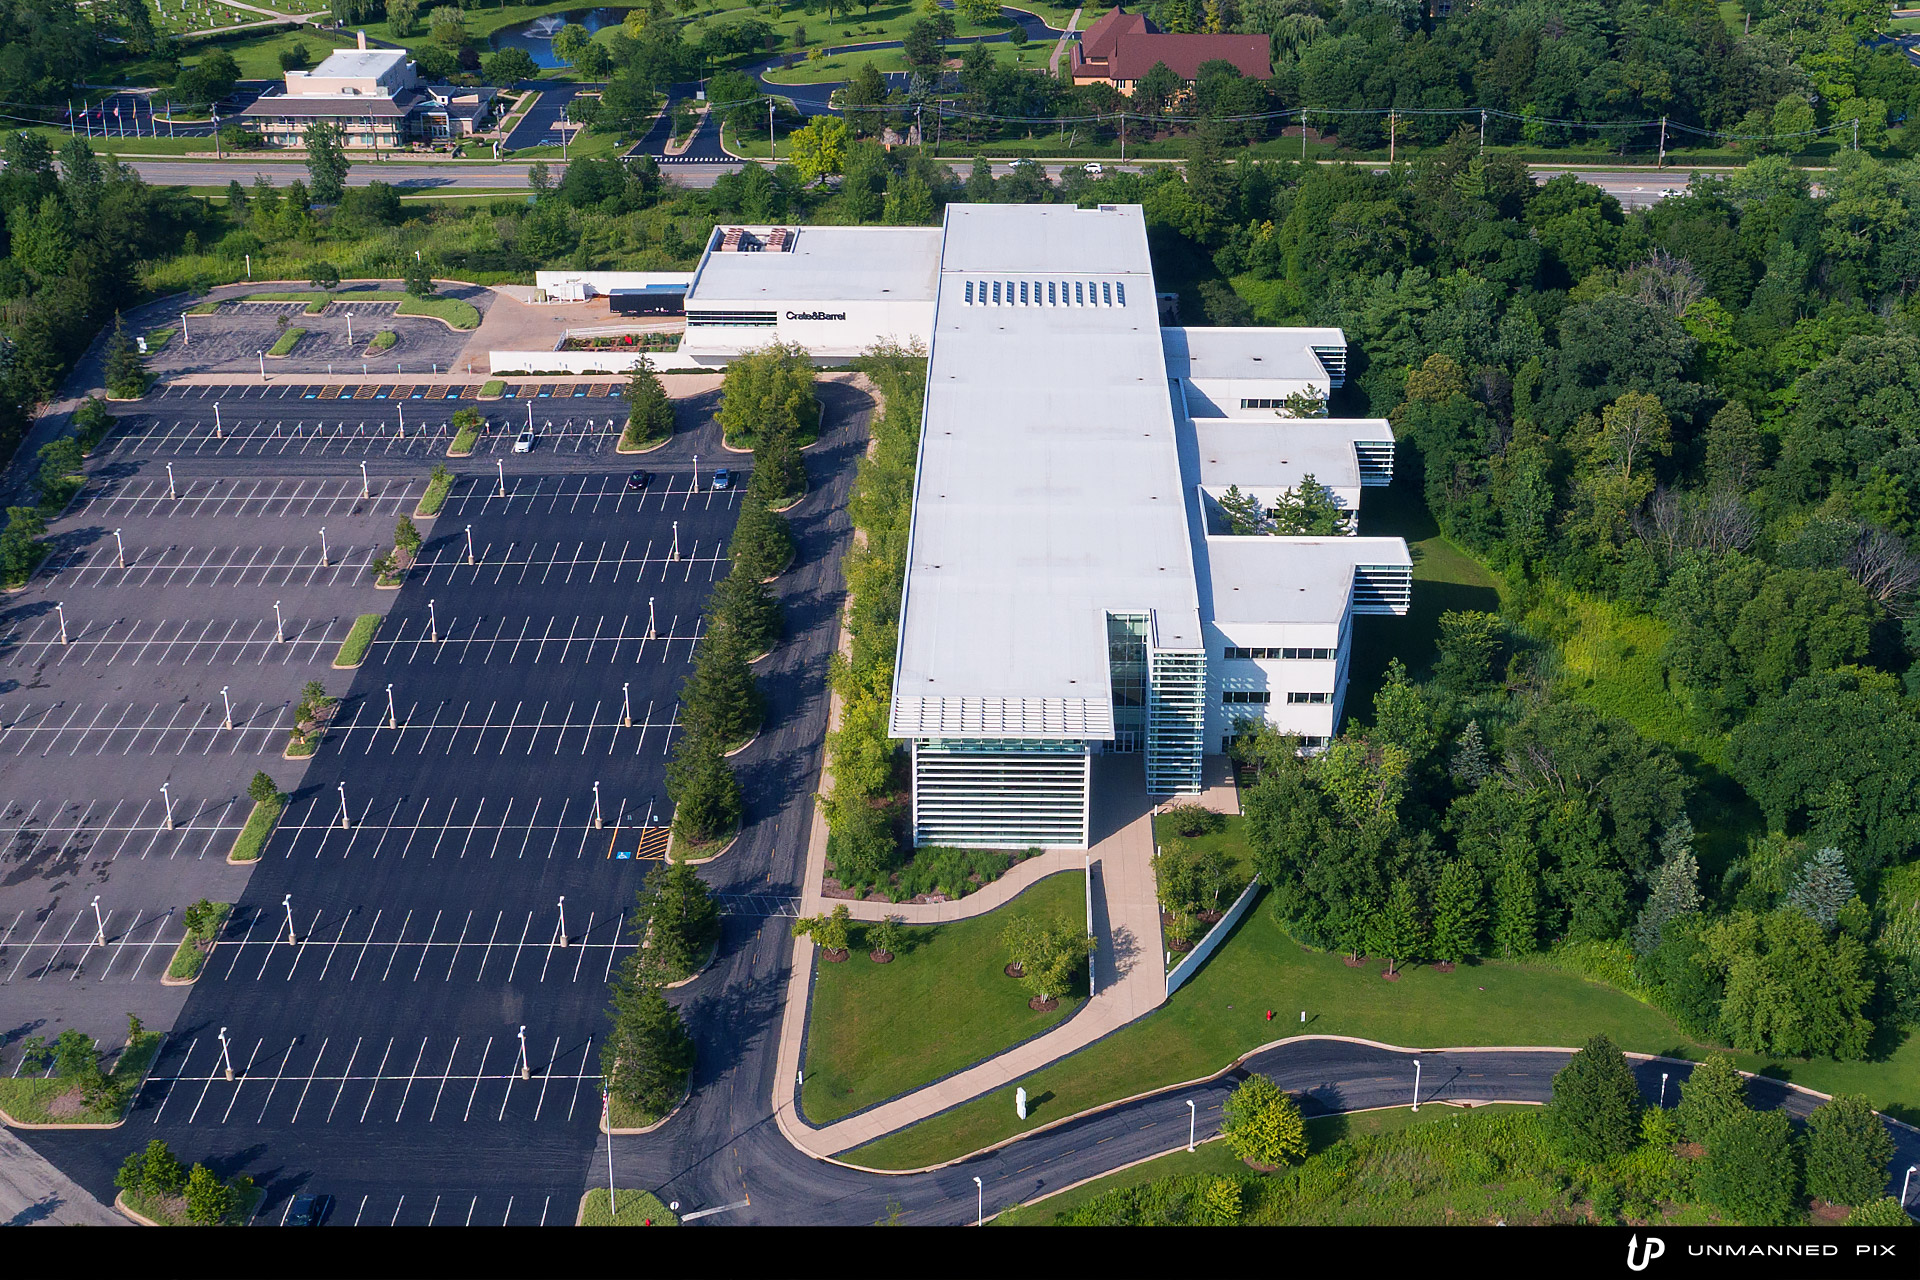 aerial view of crate & barrel headquarters, facing west, photographed by unmannedpix.com